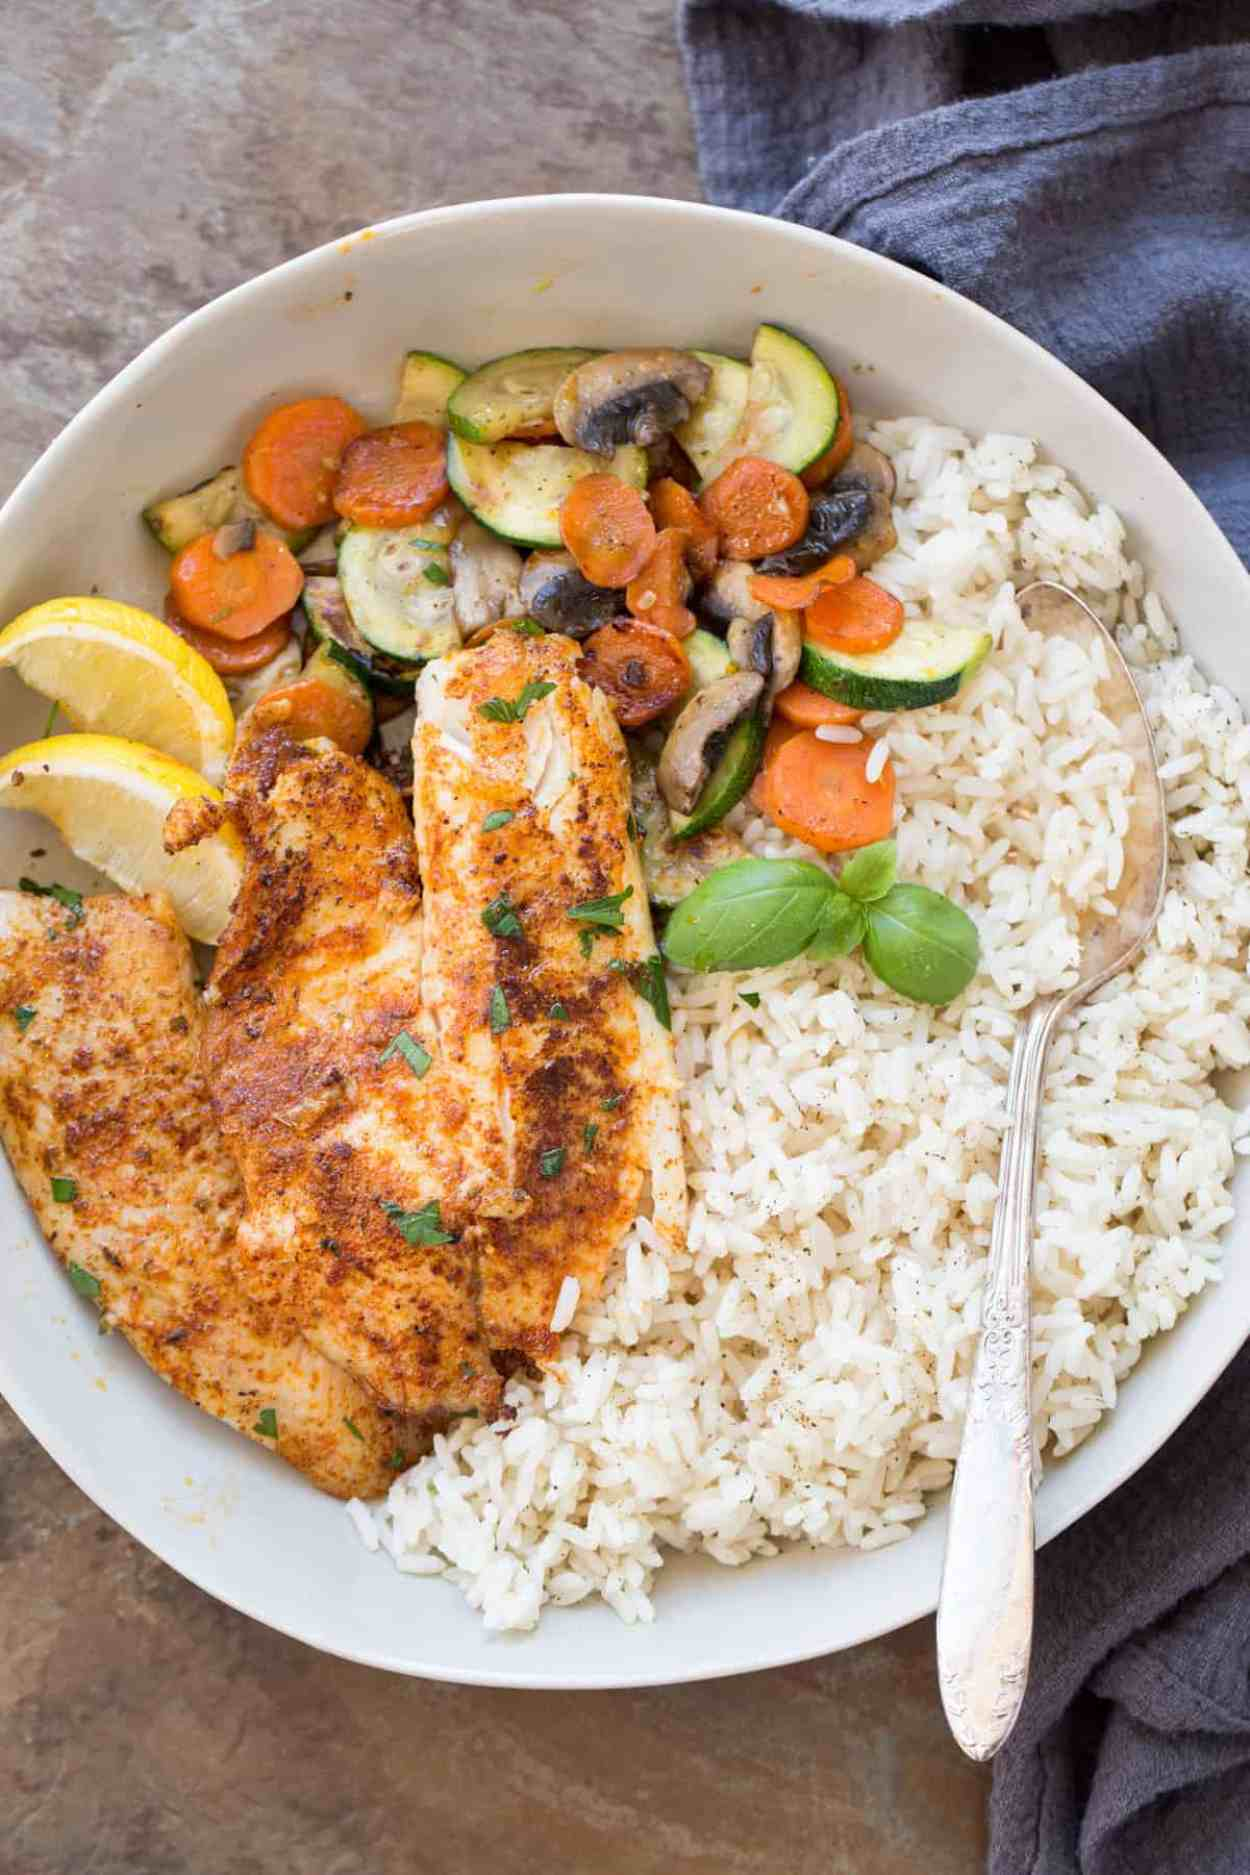 Tilapia fish on a plate with rice and sauteed vegetables.